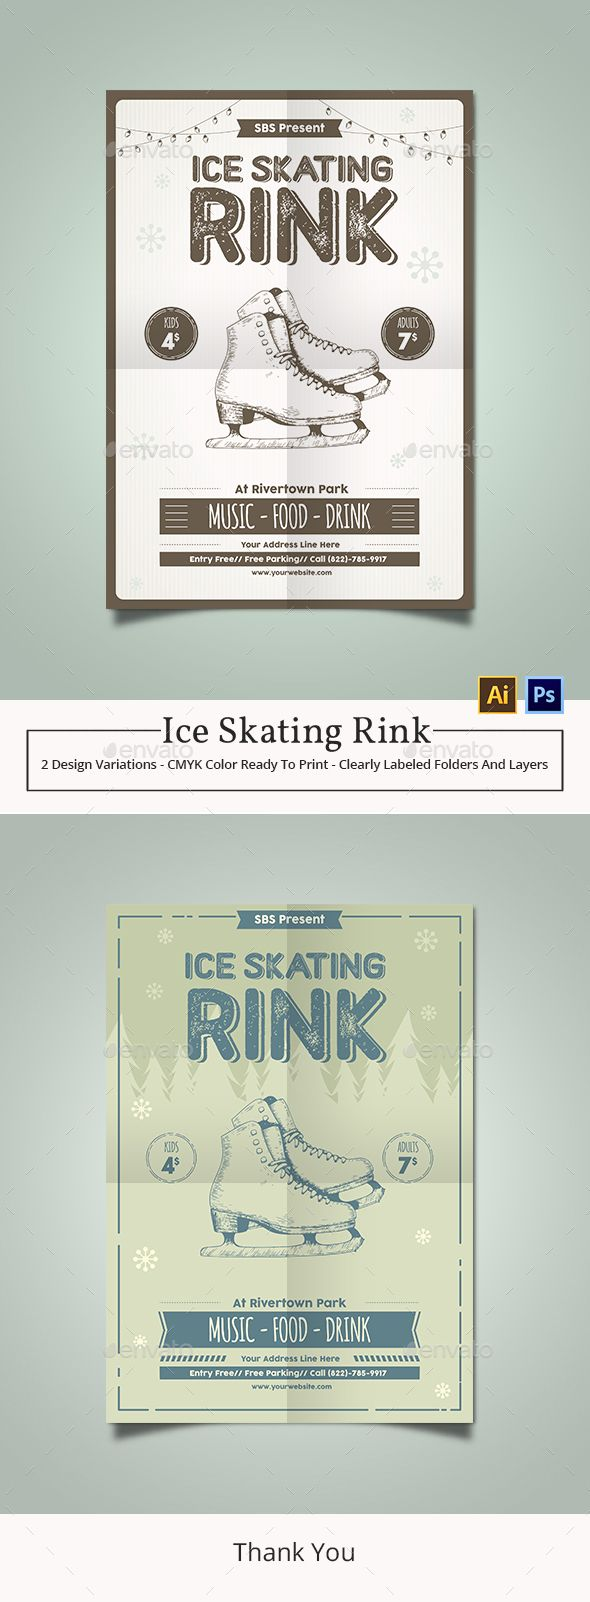 ice skating rink flyer template photoshop psd marketing simple download https